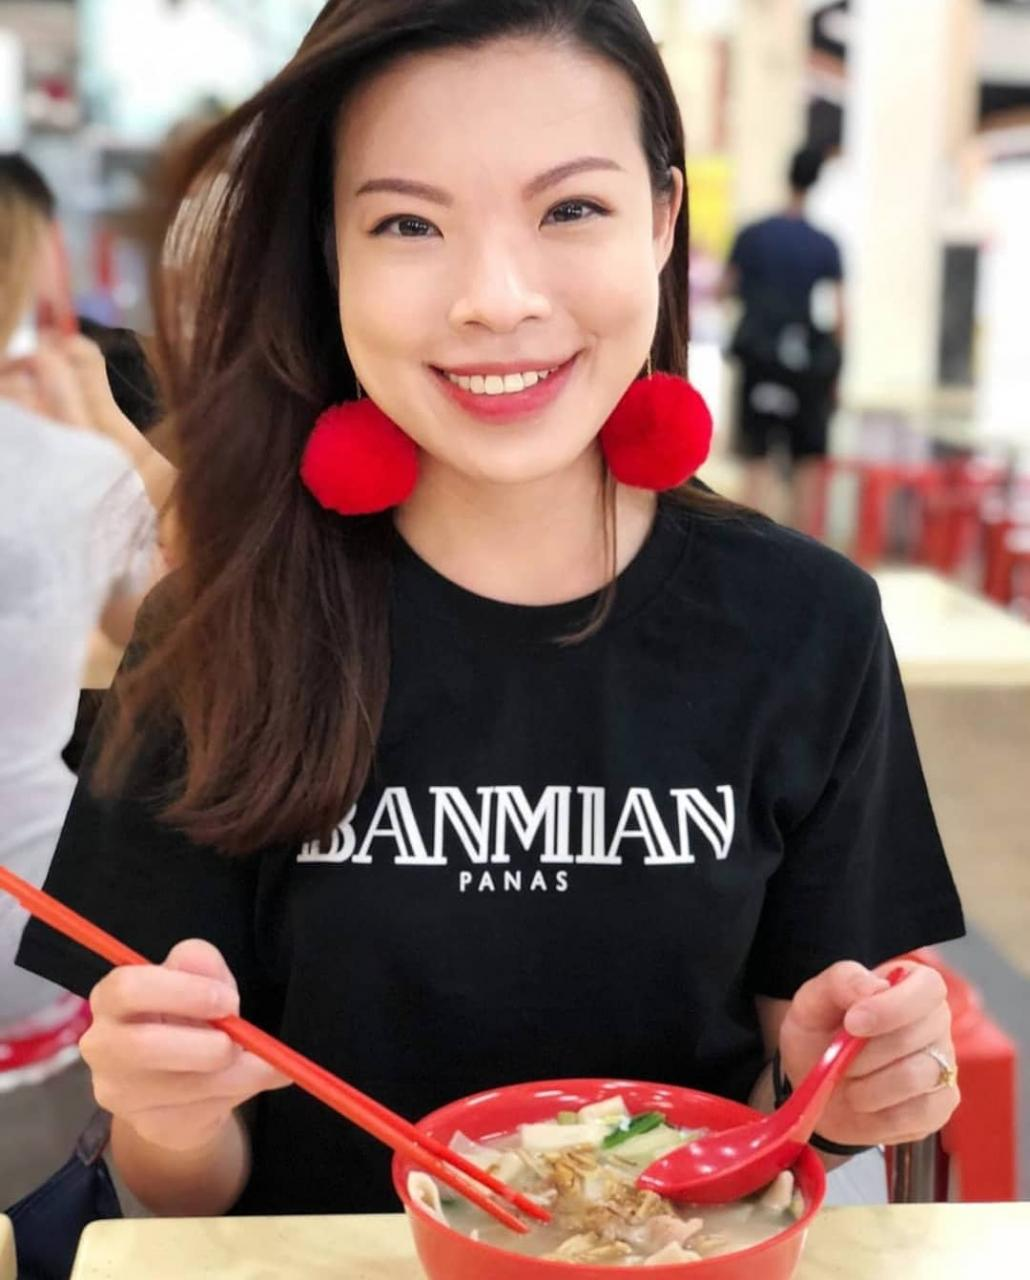 Girl eating Ban Mian wearing a Banmian shirt